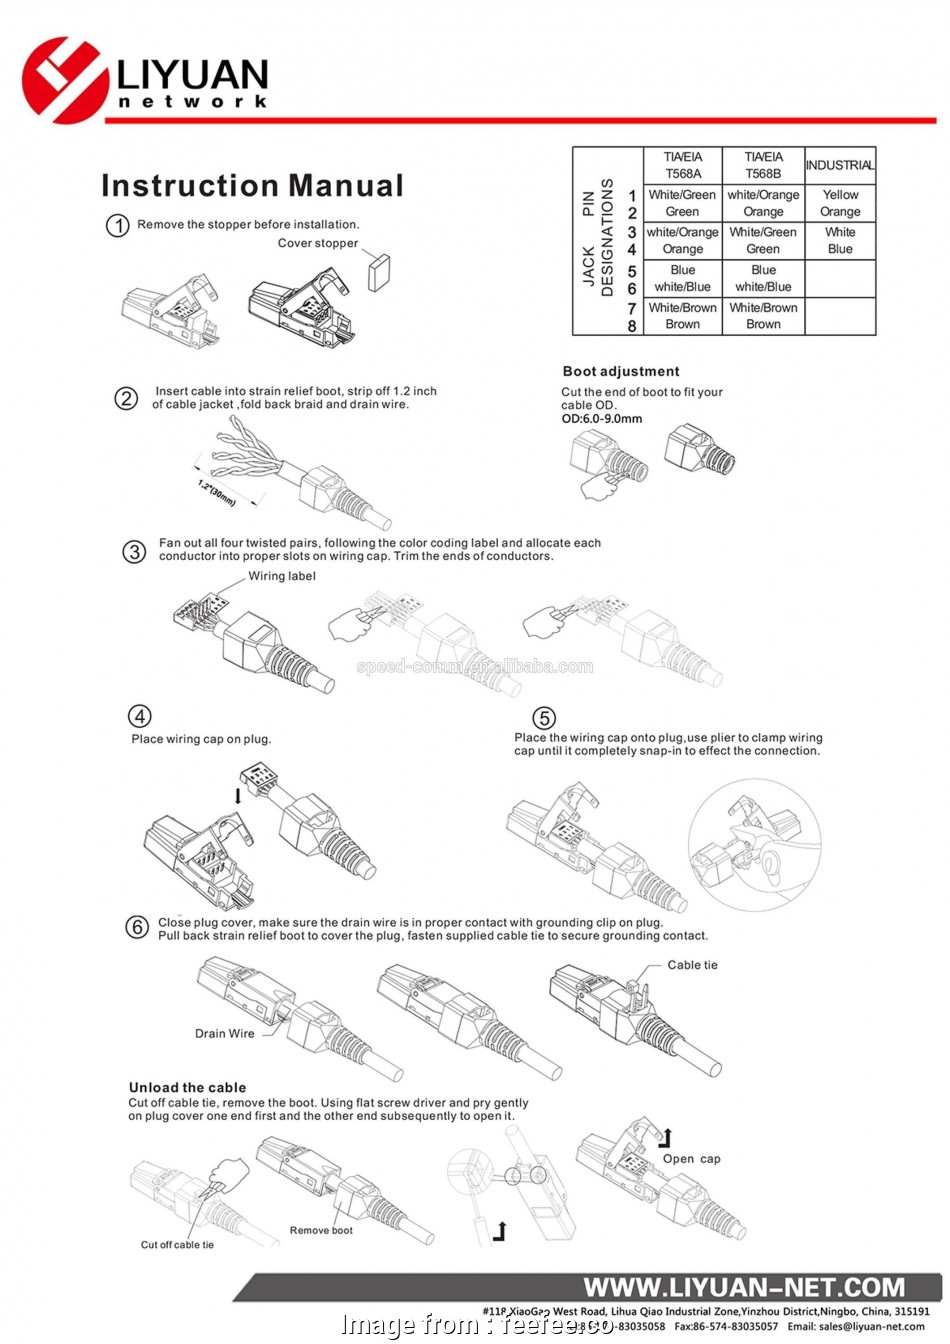 Power Outlet Wiring Diagram Popular Wiring Diagram Gfci